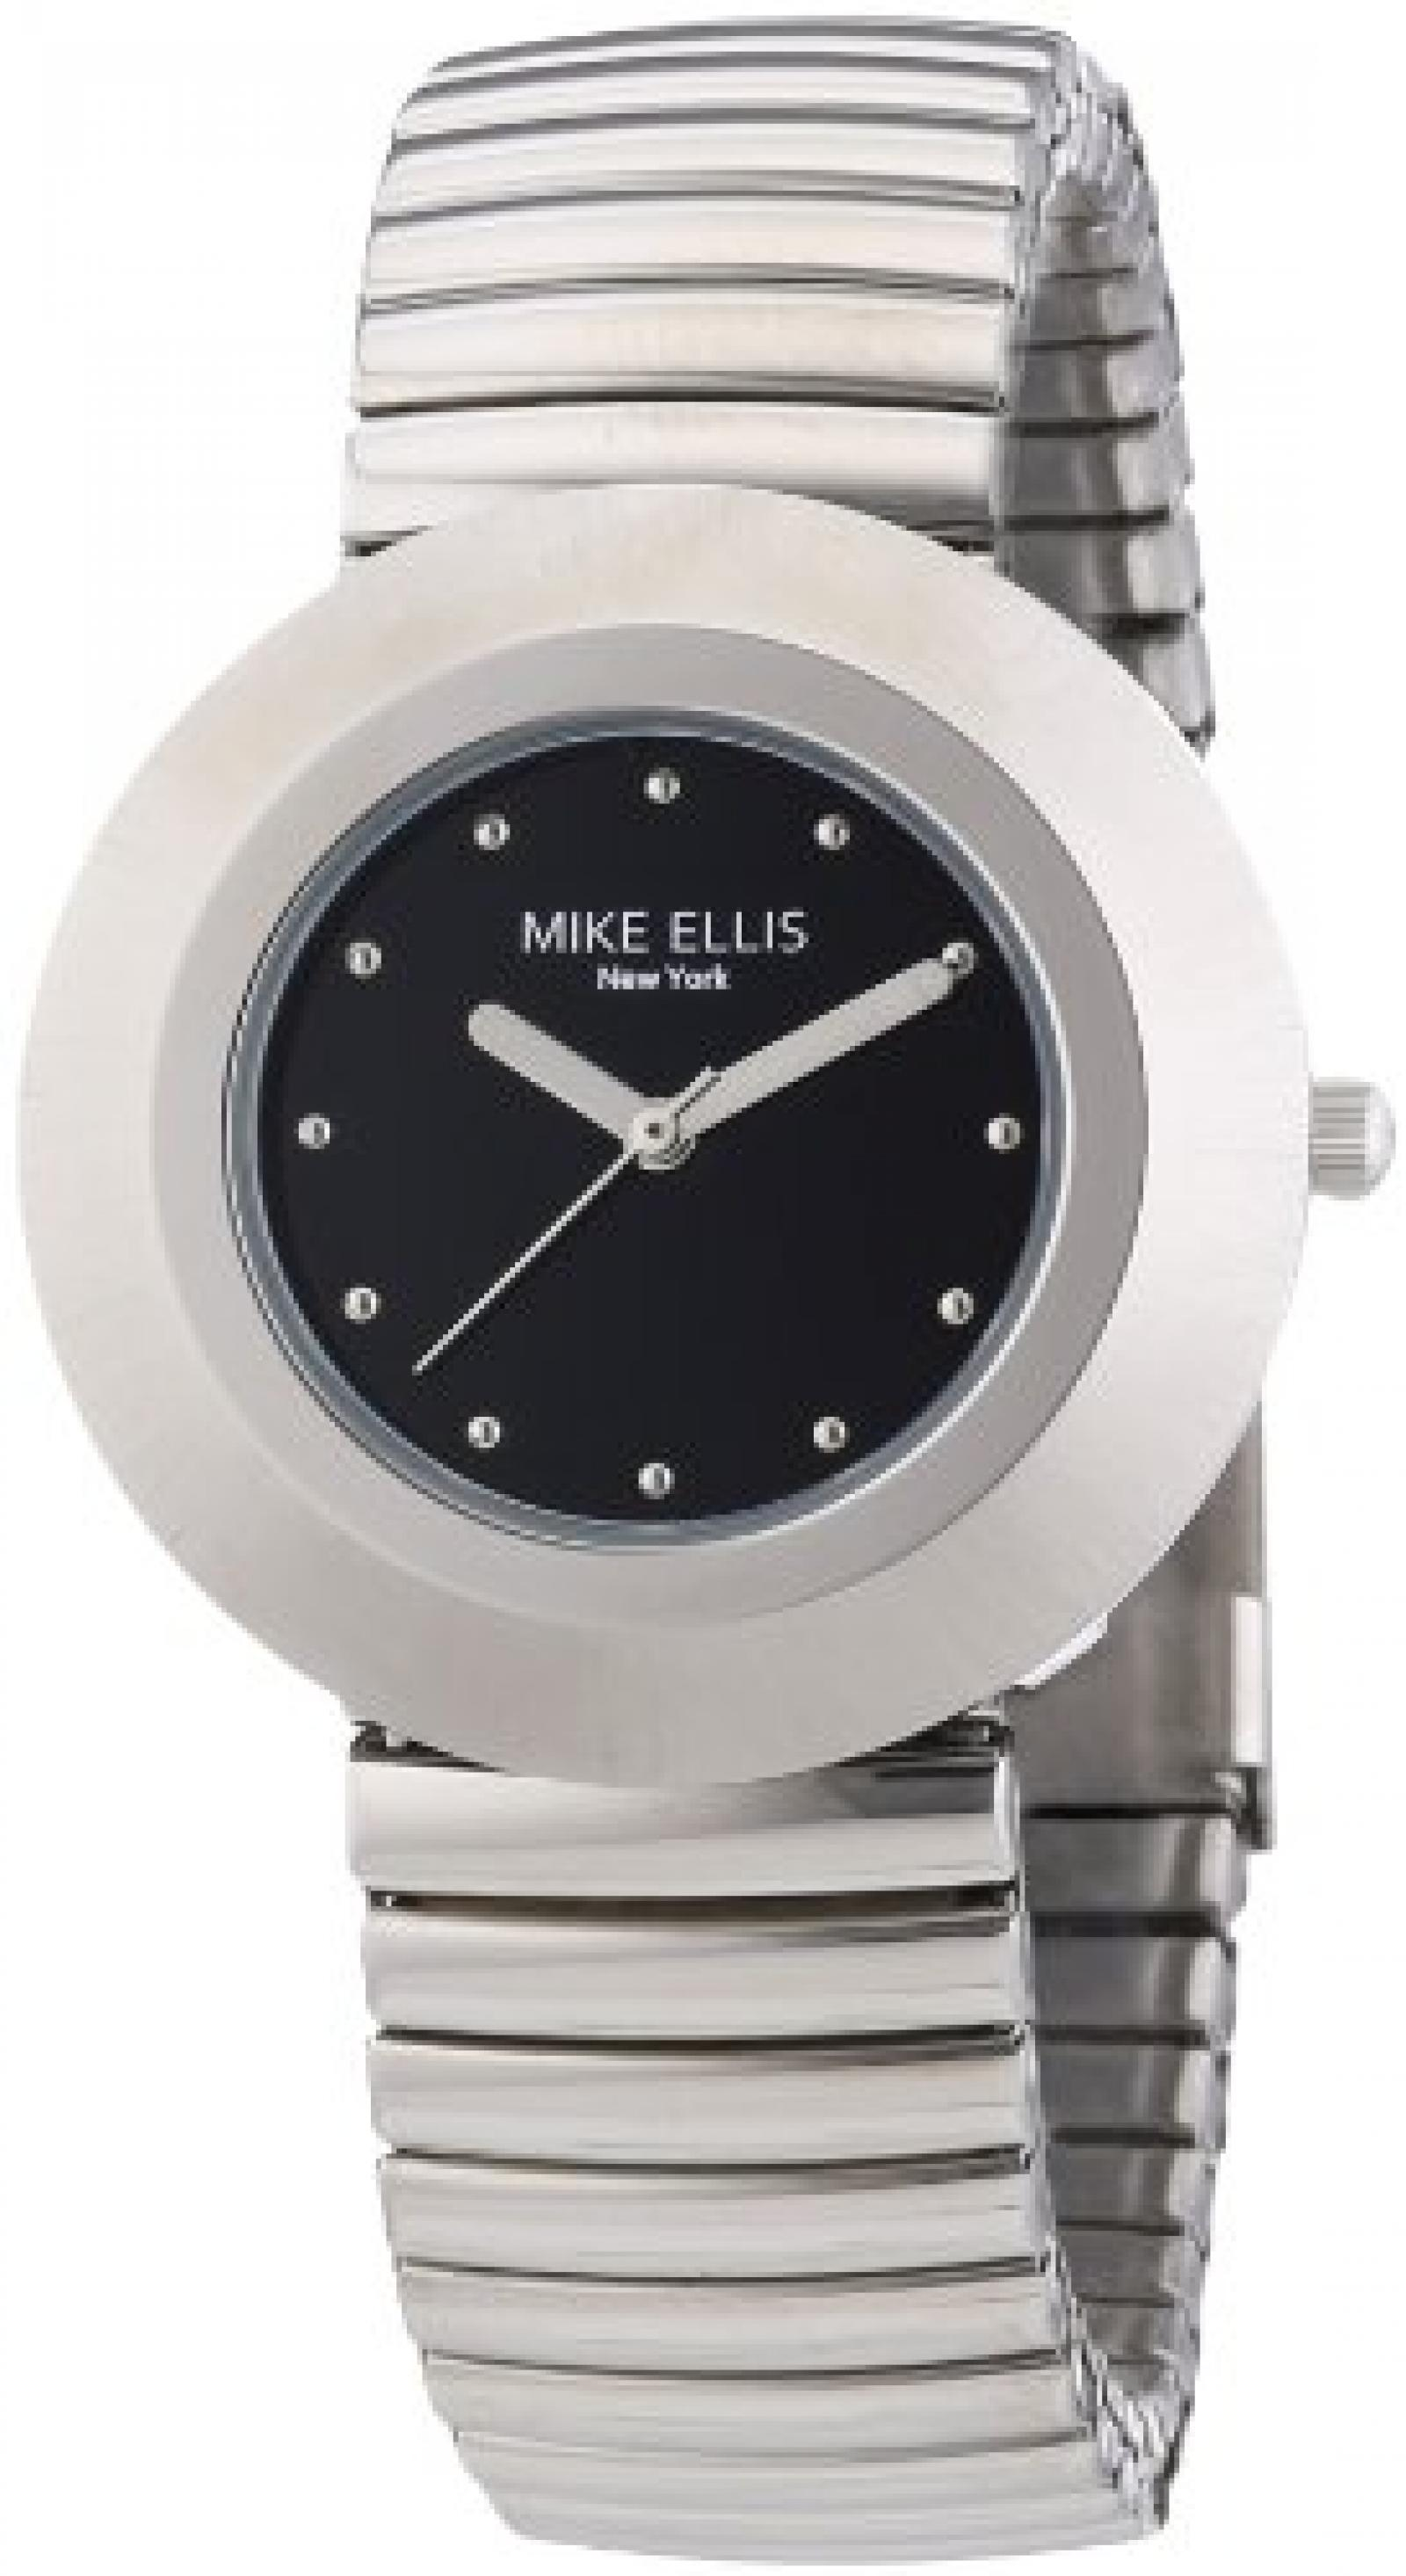 Mike Ellis New York Damen-Armbanduhr XS Analog Quarz Edelstahl L2234ASM/2